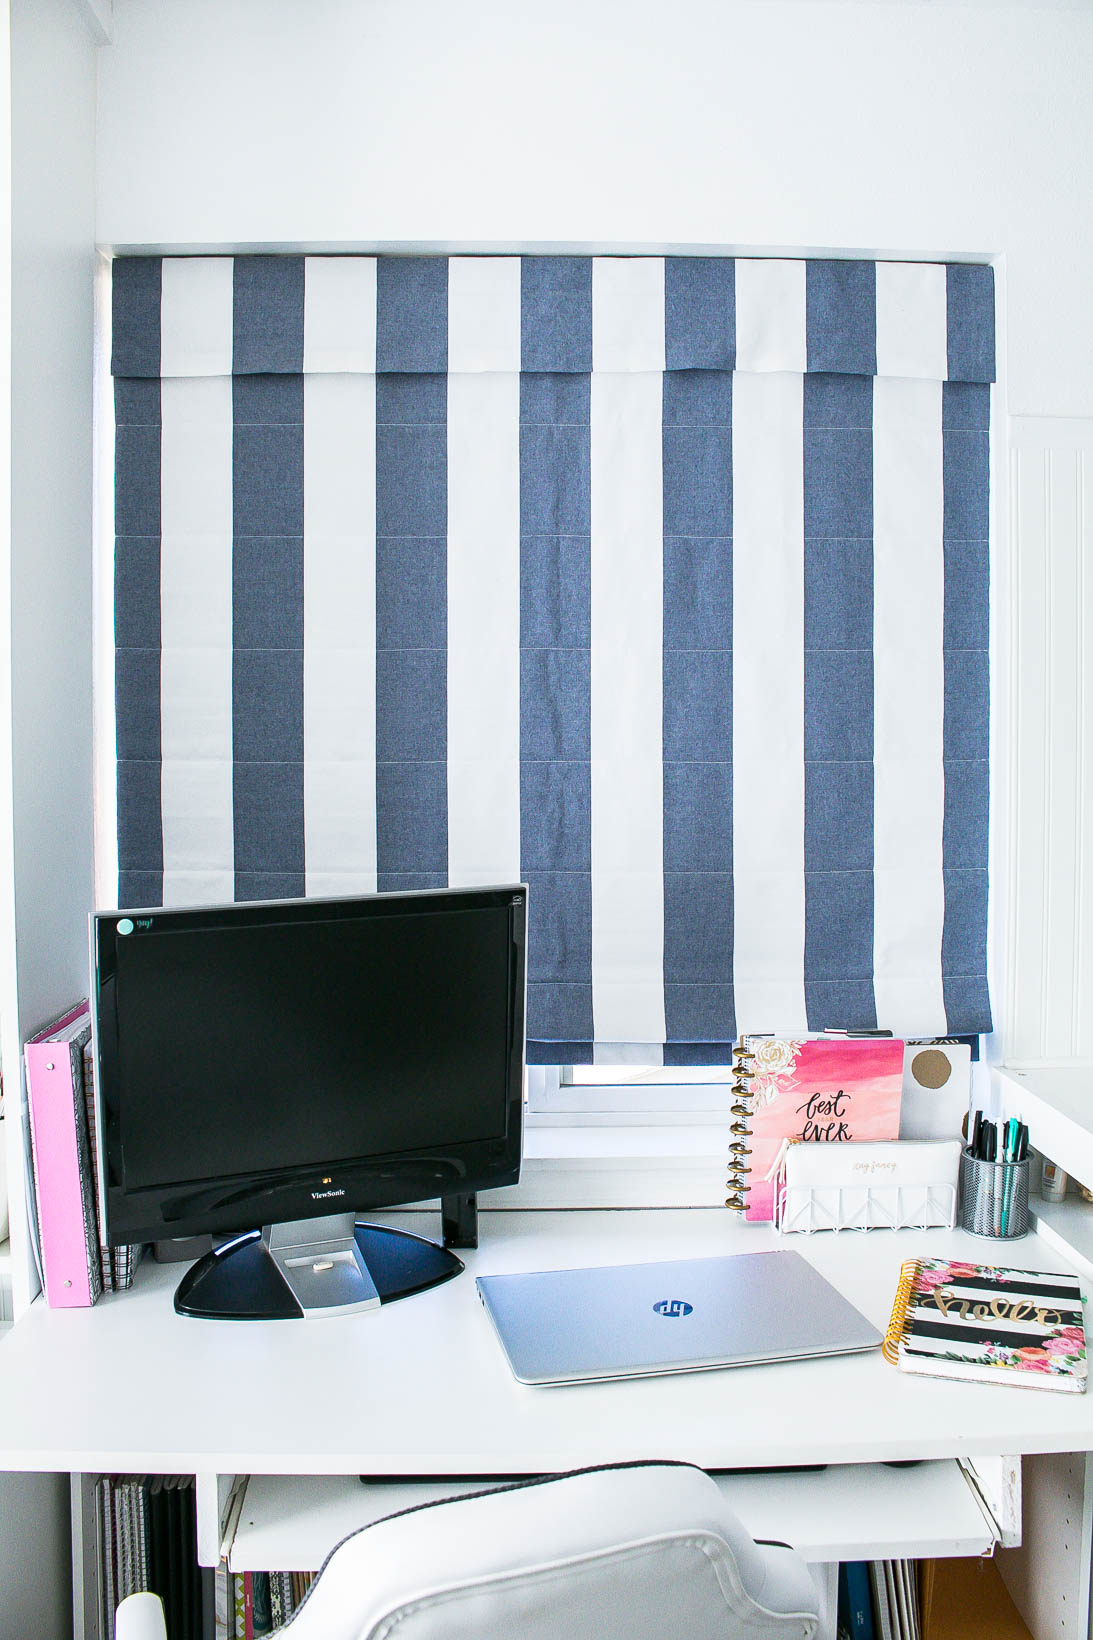 Roman shade blinds in Organized white craft room